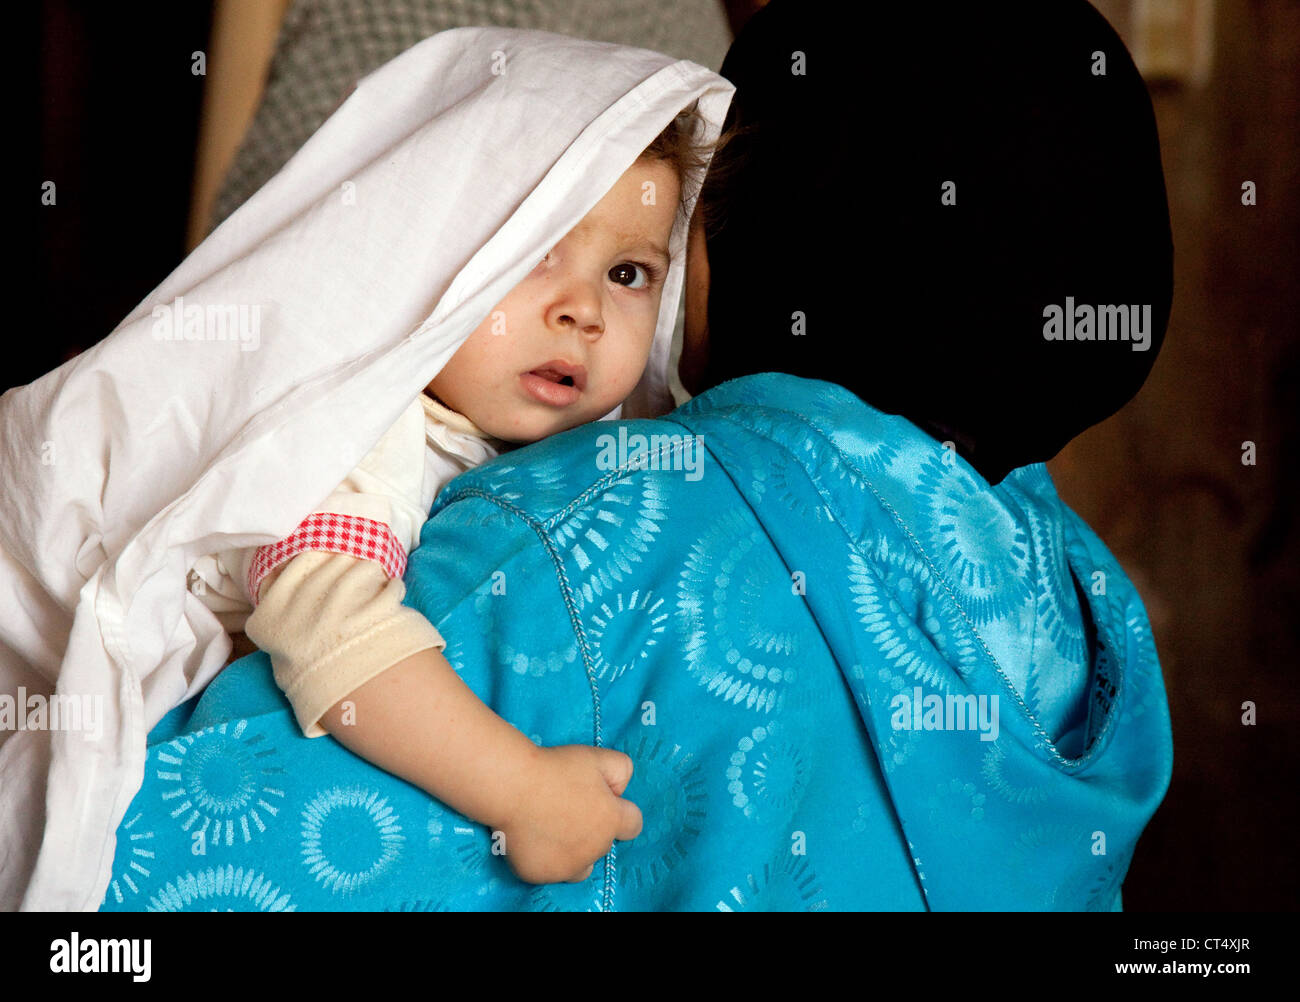 arab-baby-being-carried-by-mother-morocco-africa-CT4XJR.jpg